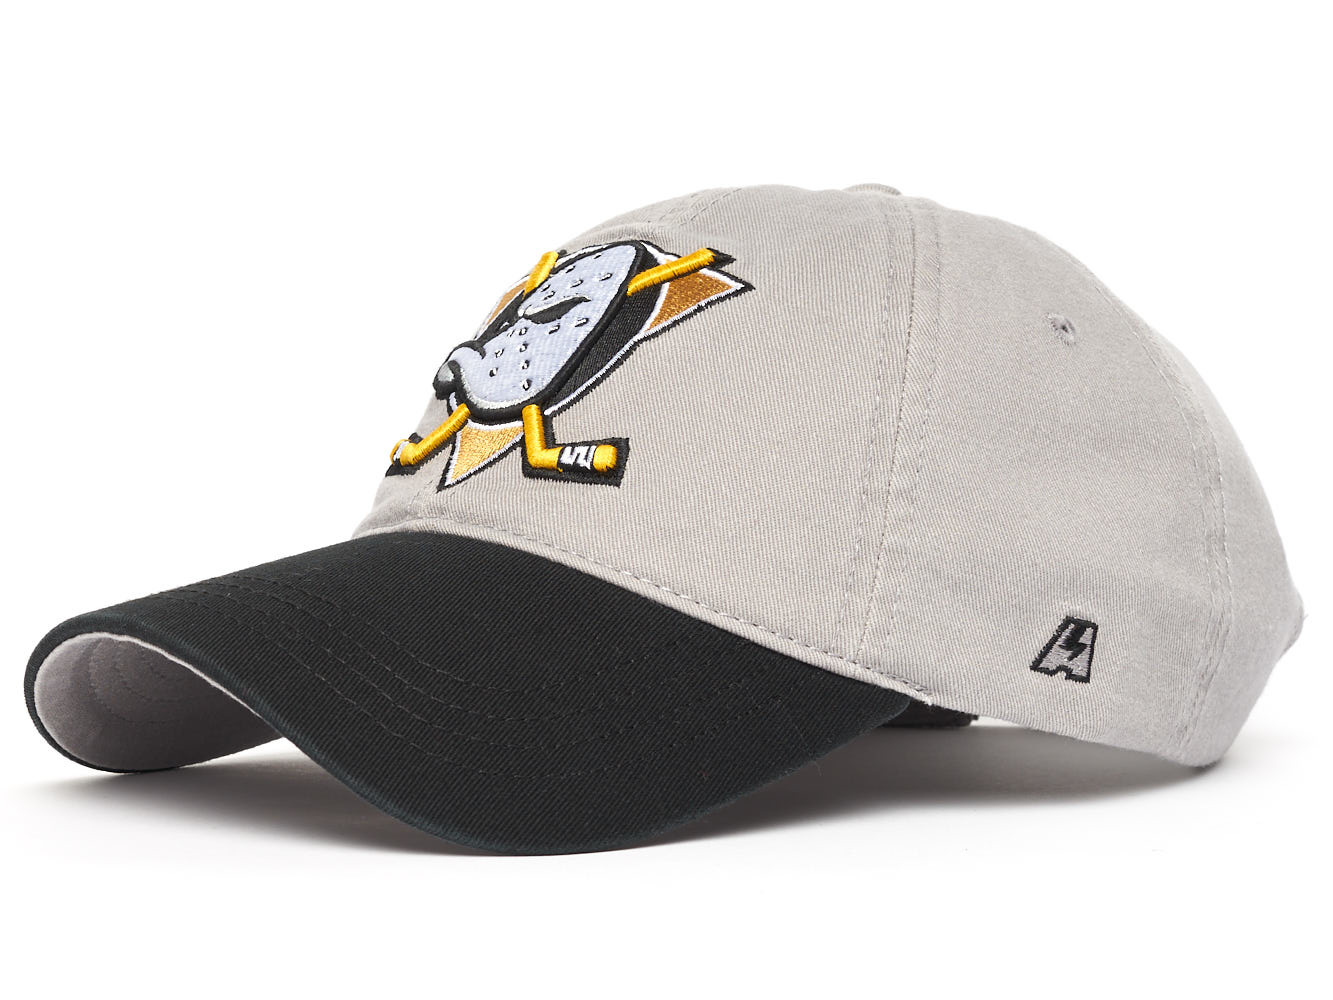 Бейсболка NHL Anaheim Ducks серая